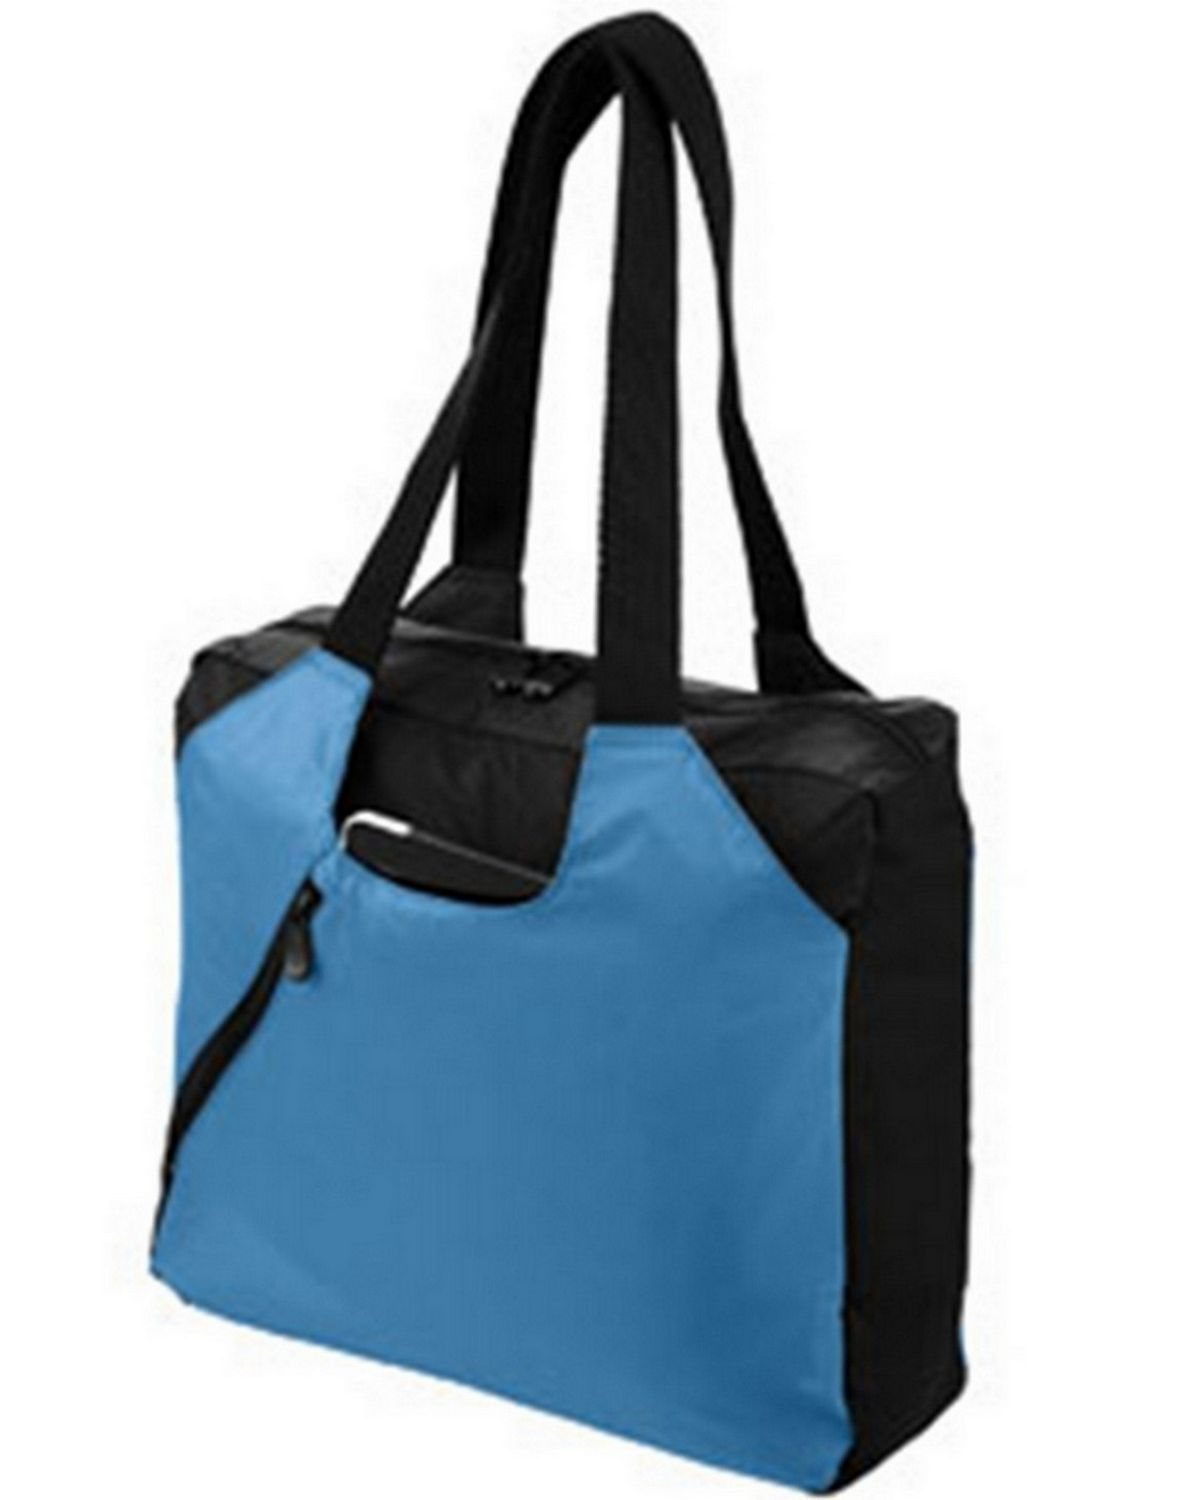 Augusta Sportswear 1148 Dauntless Bag